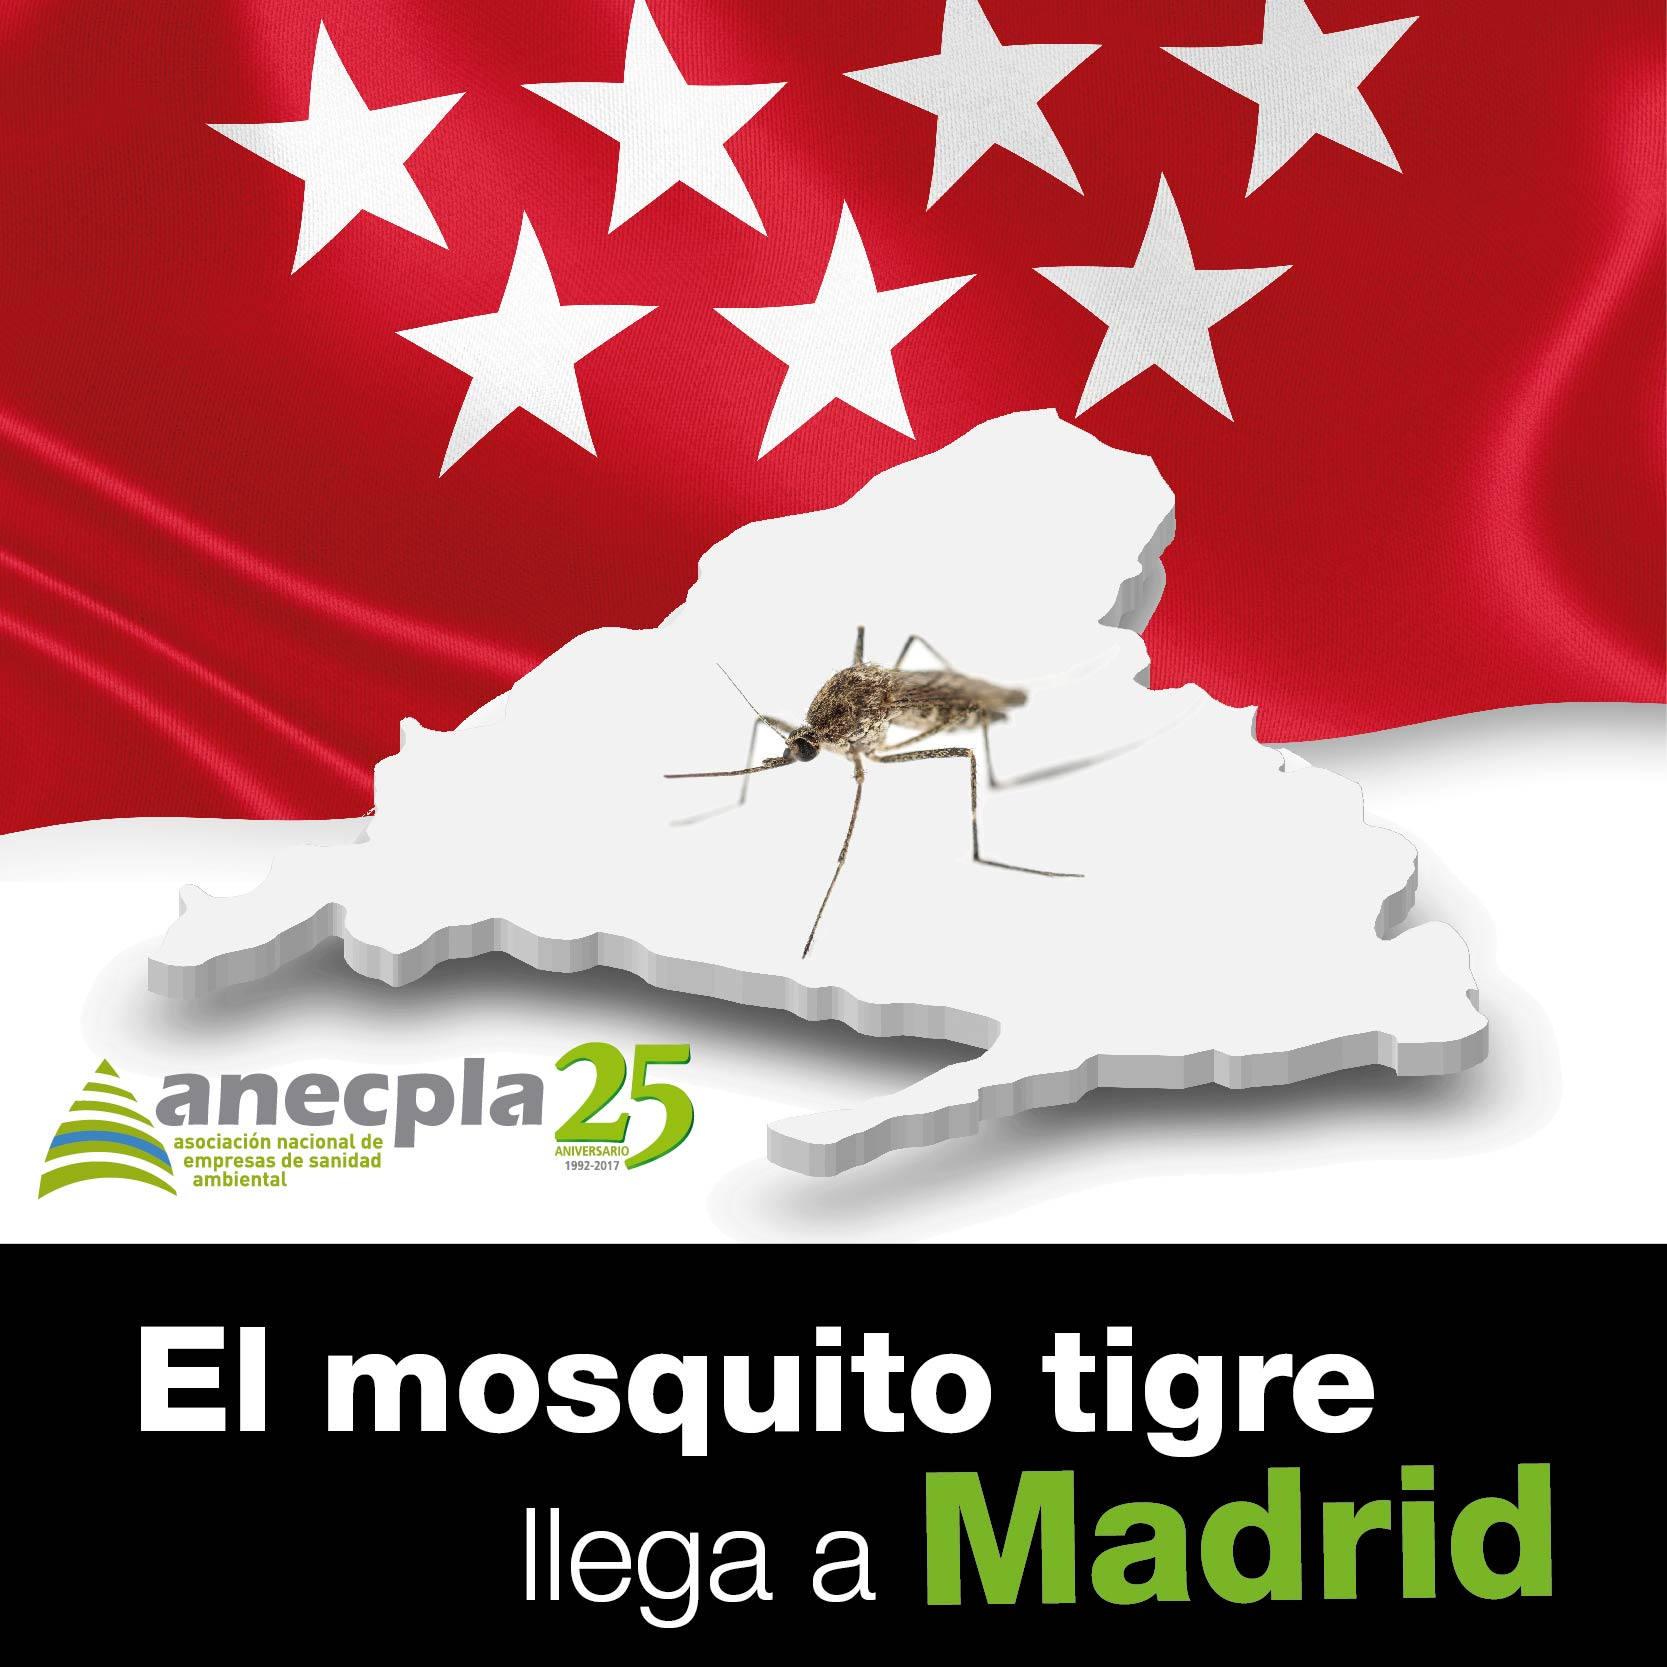 <p><strong>EL MOSQUITO TIGRE LLEGA A MADRID</strong></p>